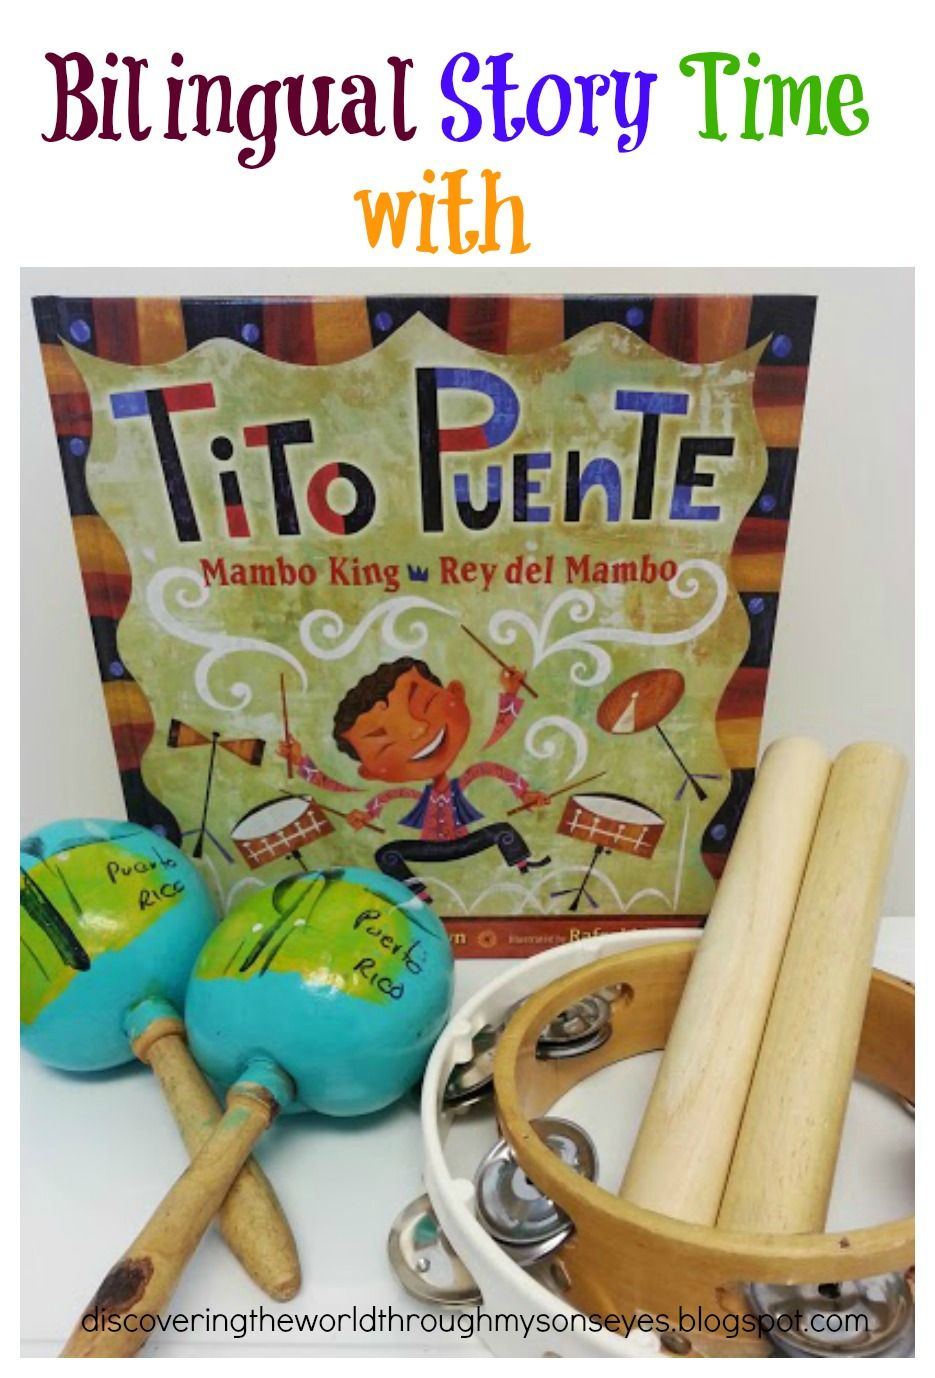 Spanish Language Summer Program Day 5: Story Time with Tito Puente Mambo King